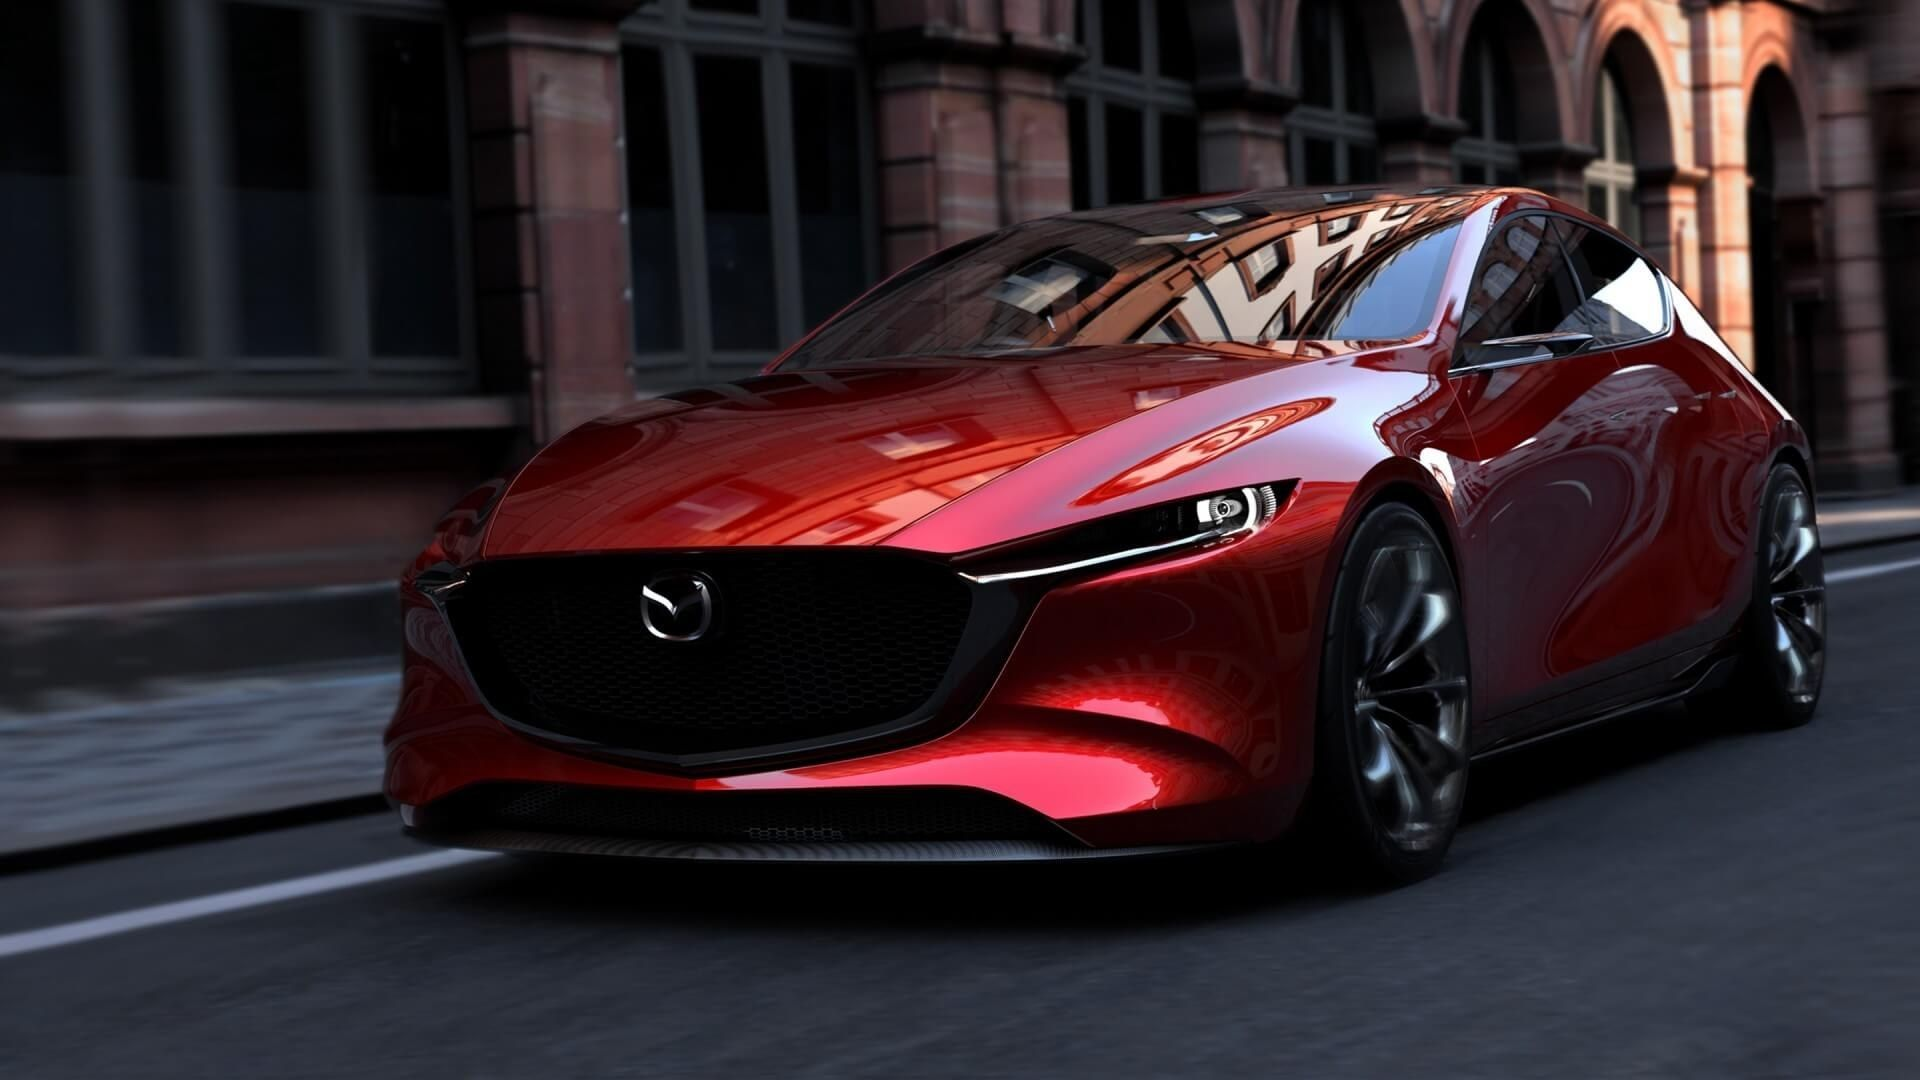 The 2020 Mazda Mx 5 Miata Redesign Explore 2020 Mazda Mx 5 Miata Performance And Technology Features See Models And Pricing As Well As Photo Mazda Kai Motor